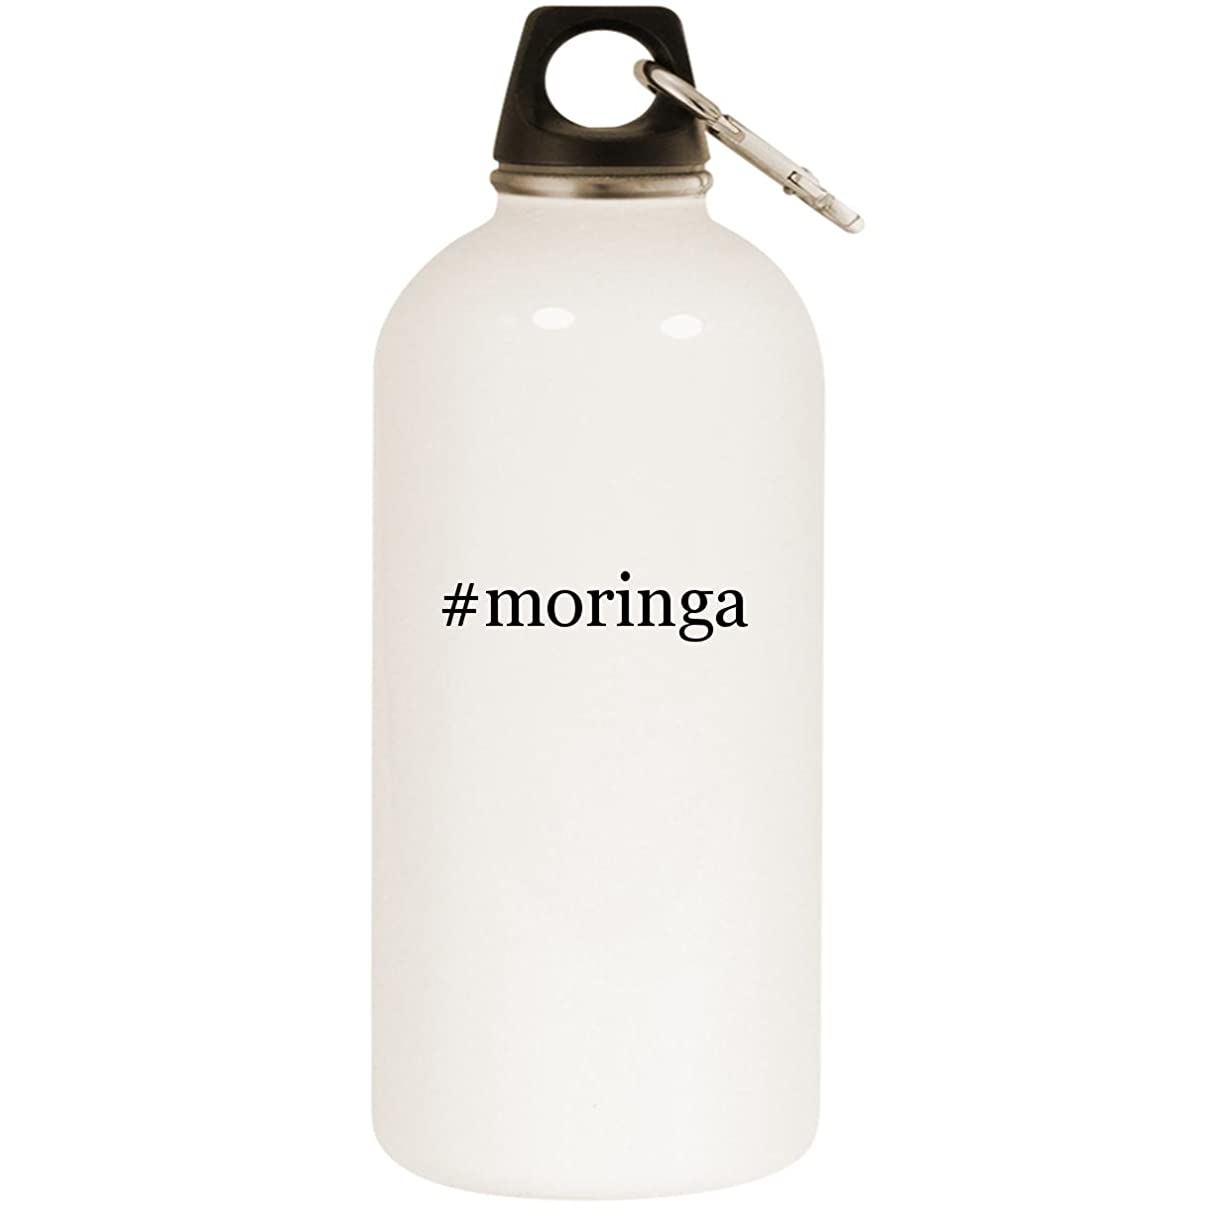 Molandra Products #Moringa - White Hashtag 20oz Stainless Steel Water Bottle with Carabiner